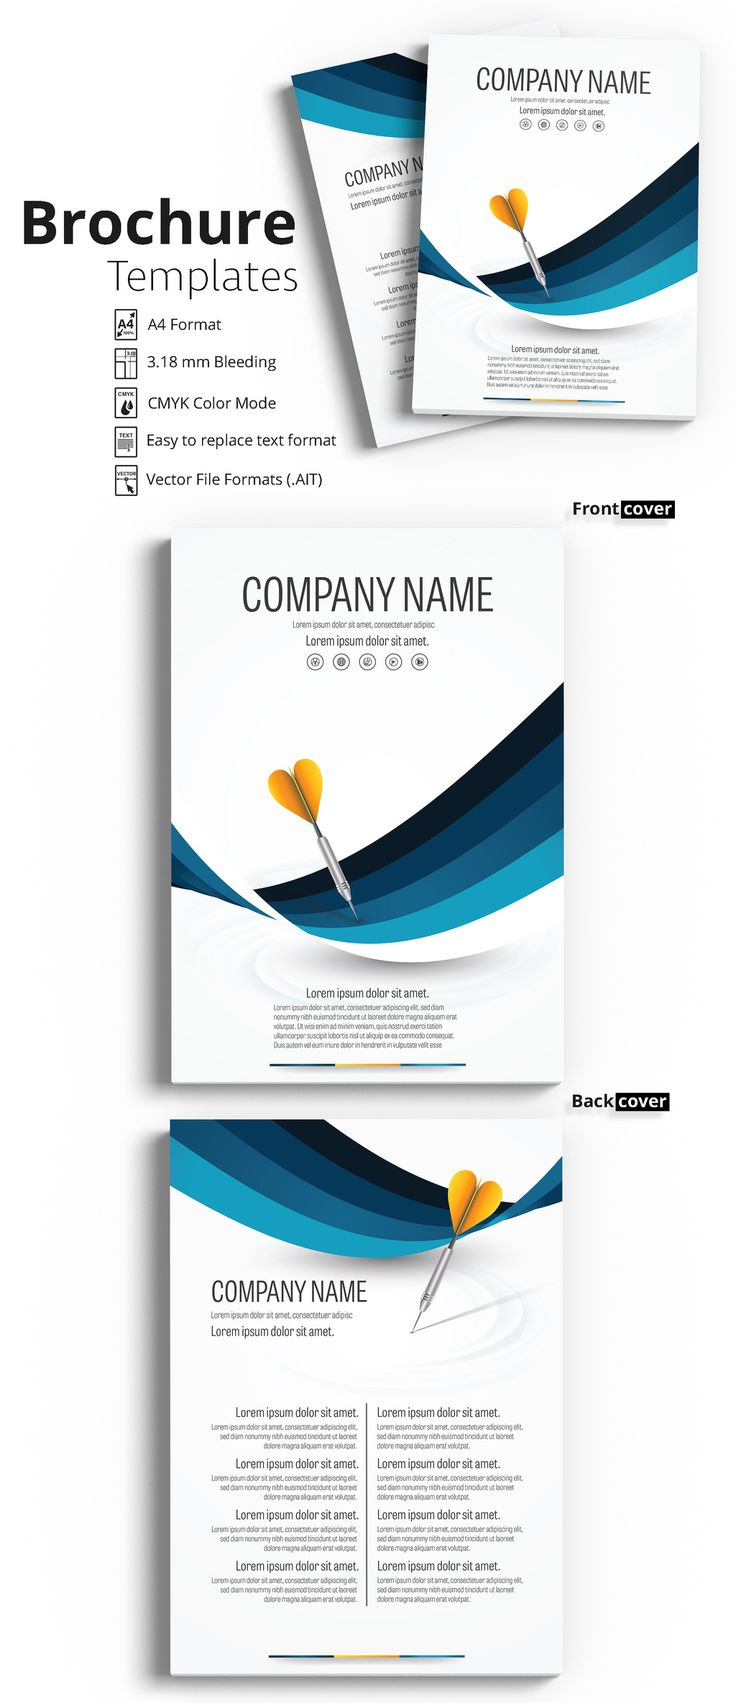 Brochure Cover Layout with Blue  Accents and Yellow Darts - image | Adobe Stock #Brochure #Business #Proposal #Booklet #Flyer #Template #Design #Layout #Cover #Book #Booklet #A4 #Annual #Report| Brochure template | Brochure design template | Flyers | Template | Brochures | Flyer Background | Background design | Business Proposal | Proposal Design | Booklet | Professional | Professional - Proposal - Brochure - Template